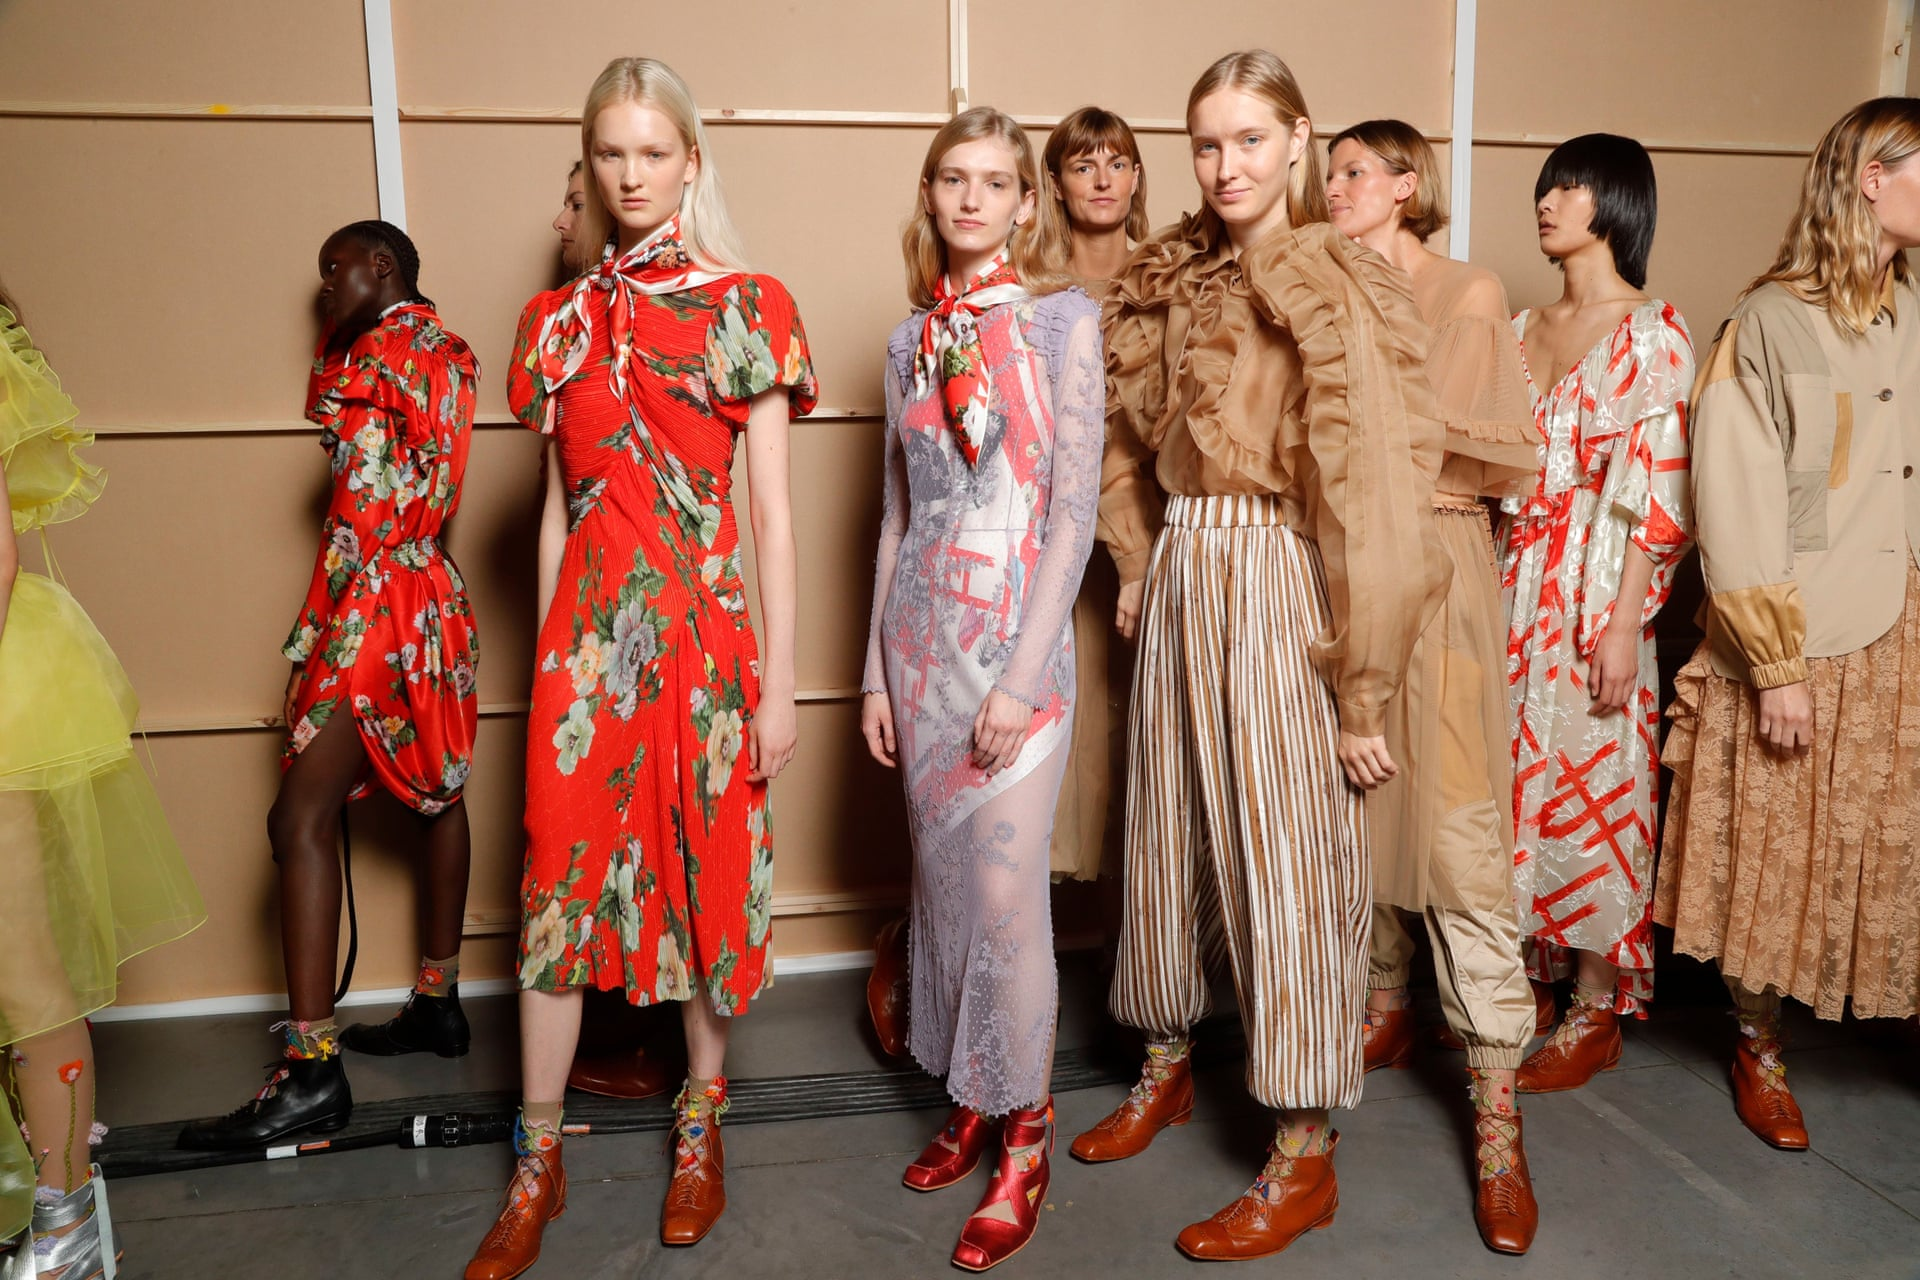 preen - London Fashion Week: un riassunto